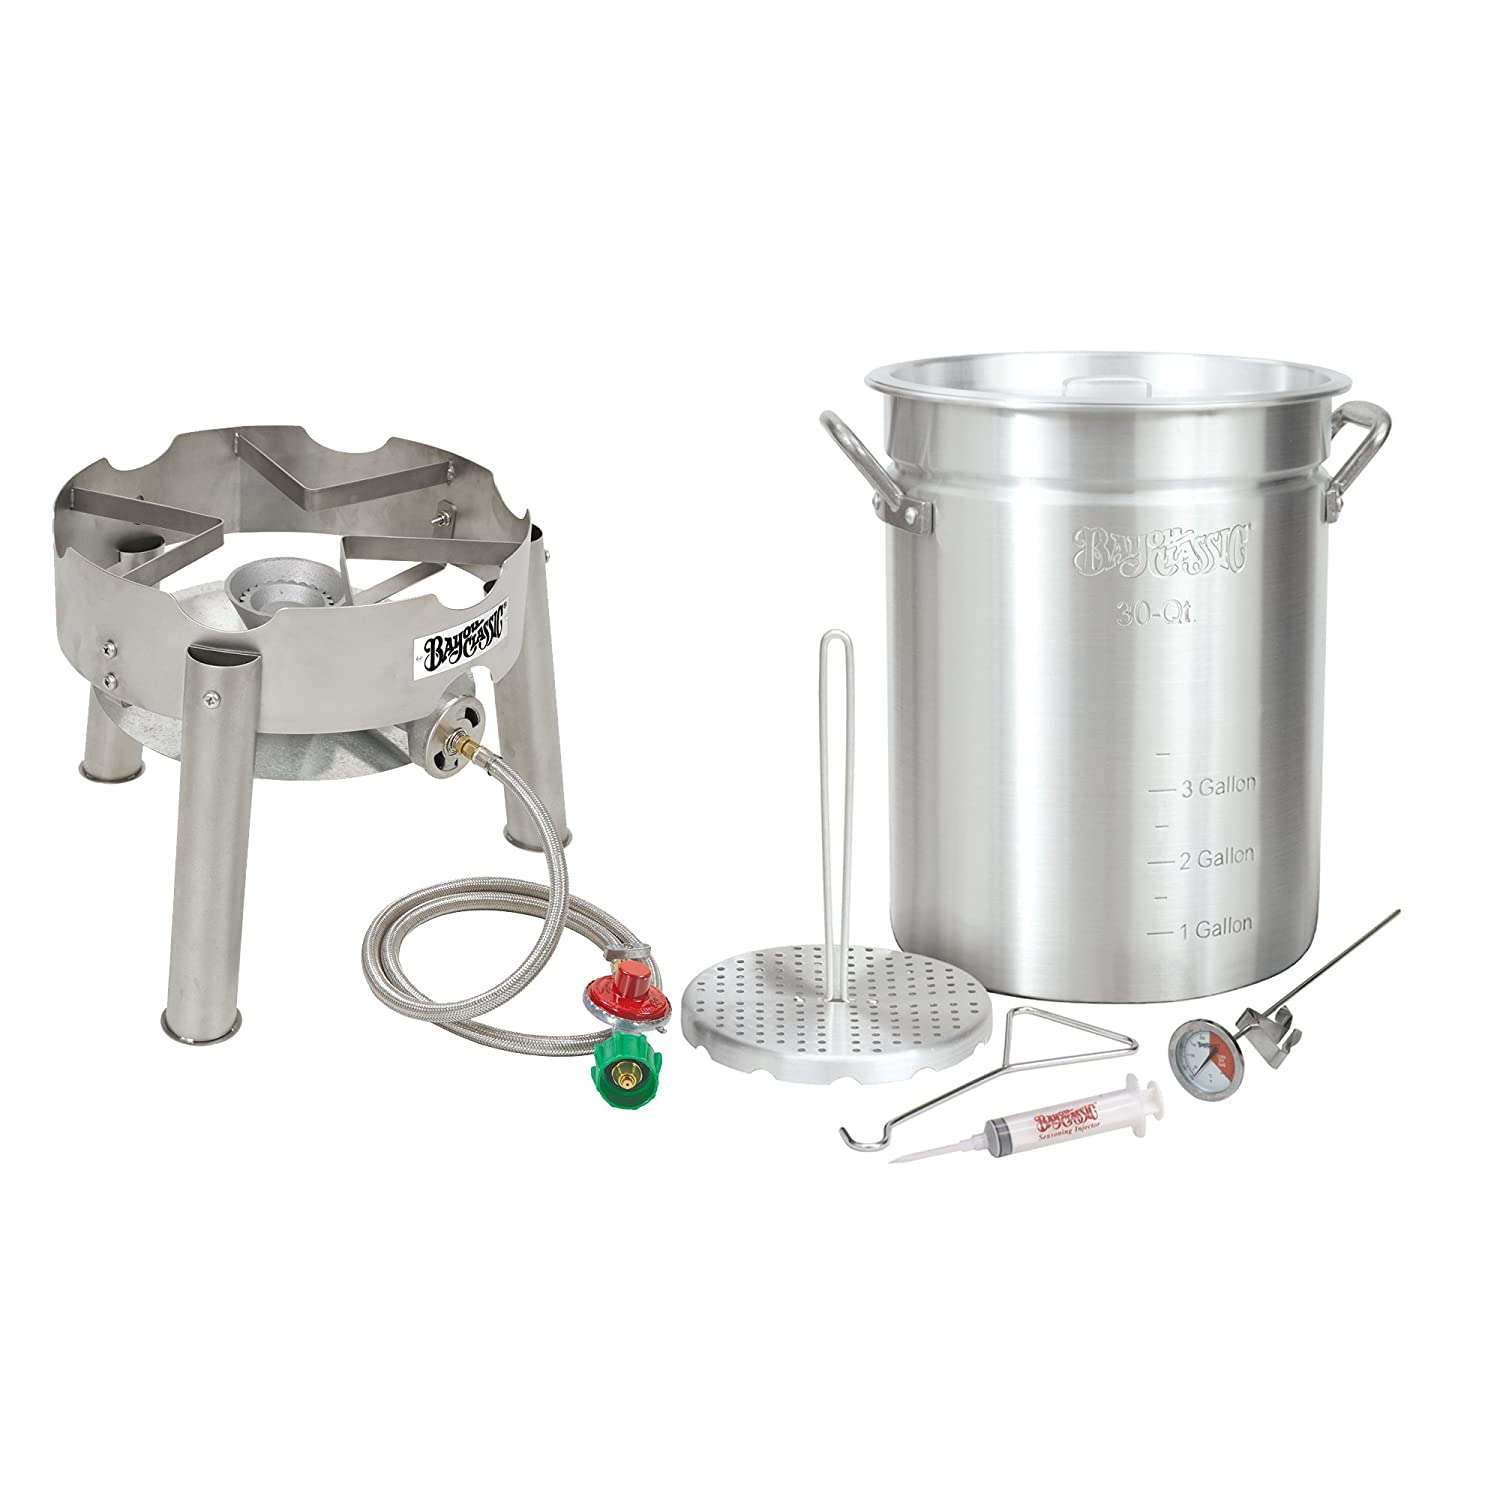 Bayou Classic Complete Deluxe Turkey Fryer Kit Aluminin Pot, Low Profile SS burner.